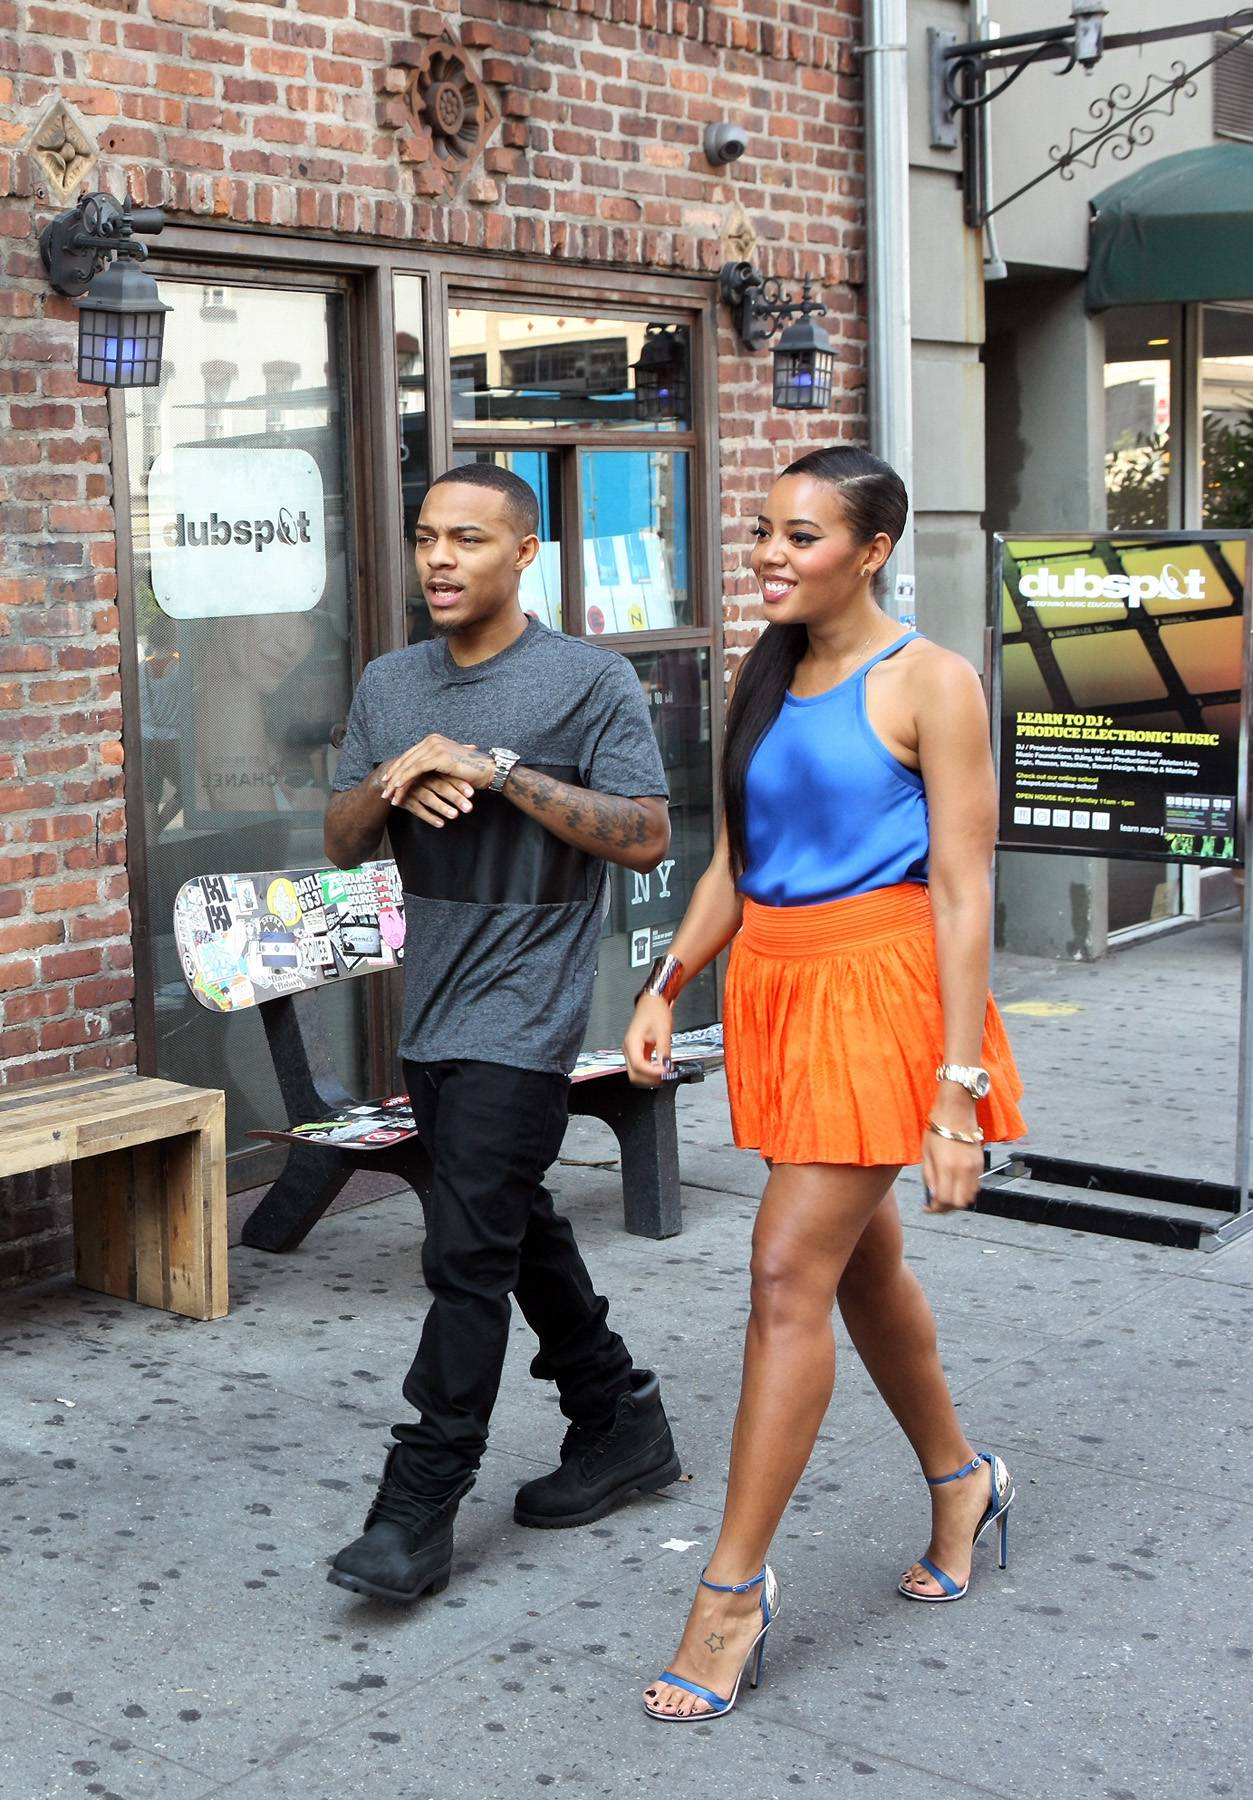 Street Runway - Hosts Bow Wow and Angela Simmons take a walk on the street while on the 106 set. (Photo: Bennett Raglin/BET/Getty Images for BET)